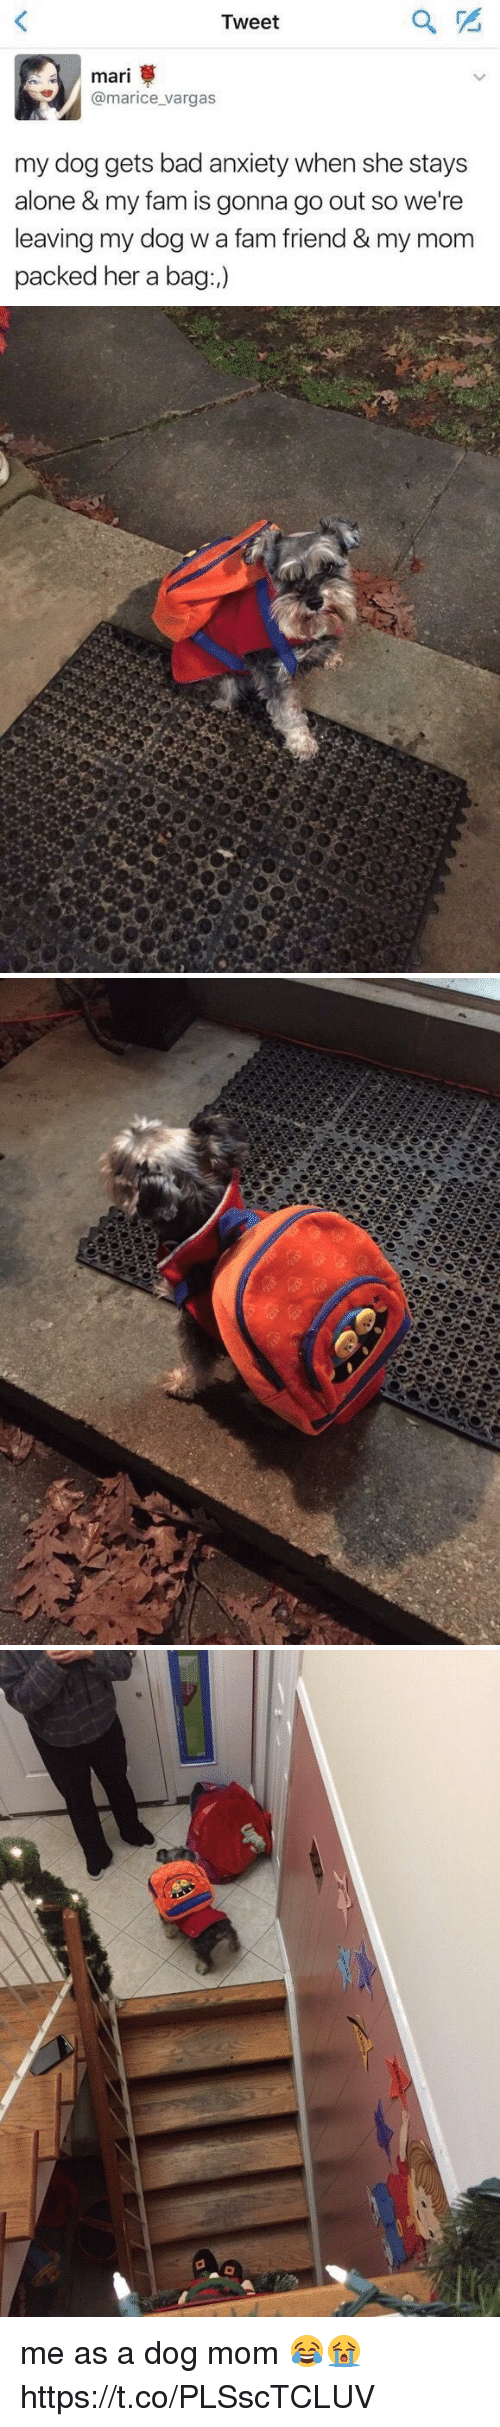 Being Alone, Bad, and Fam: Tweet  mari  marice vargas  my dog gets bad anxiety when she stays  alone & my fam is gonna go out so we're  leaving my dog wafam friend & my mom  packed her a bag   をや me as a dog mom 😂😭 https://t.co/PLSscTCLUV